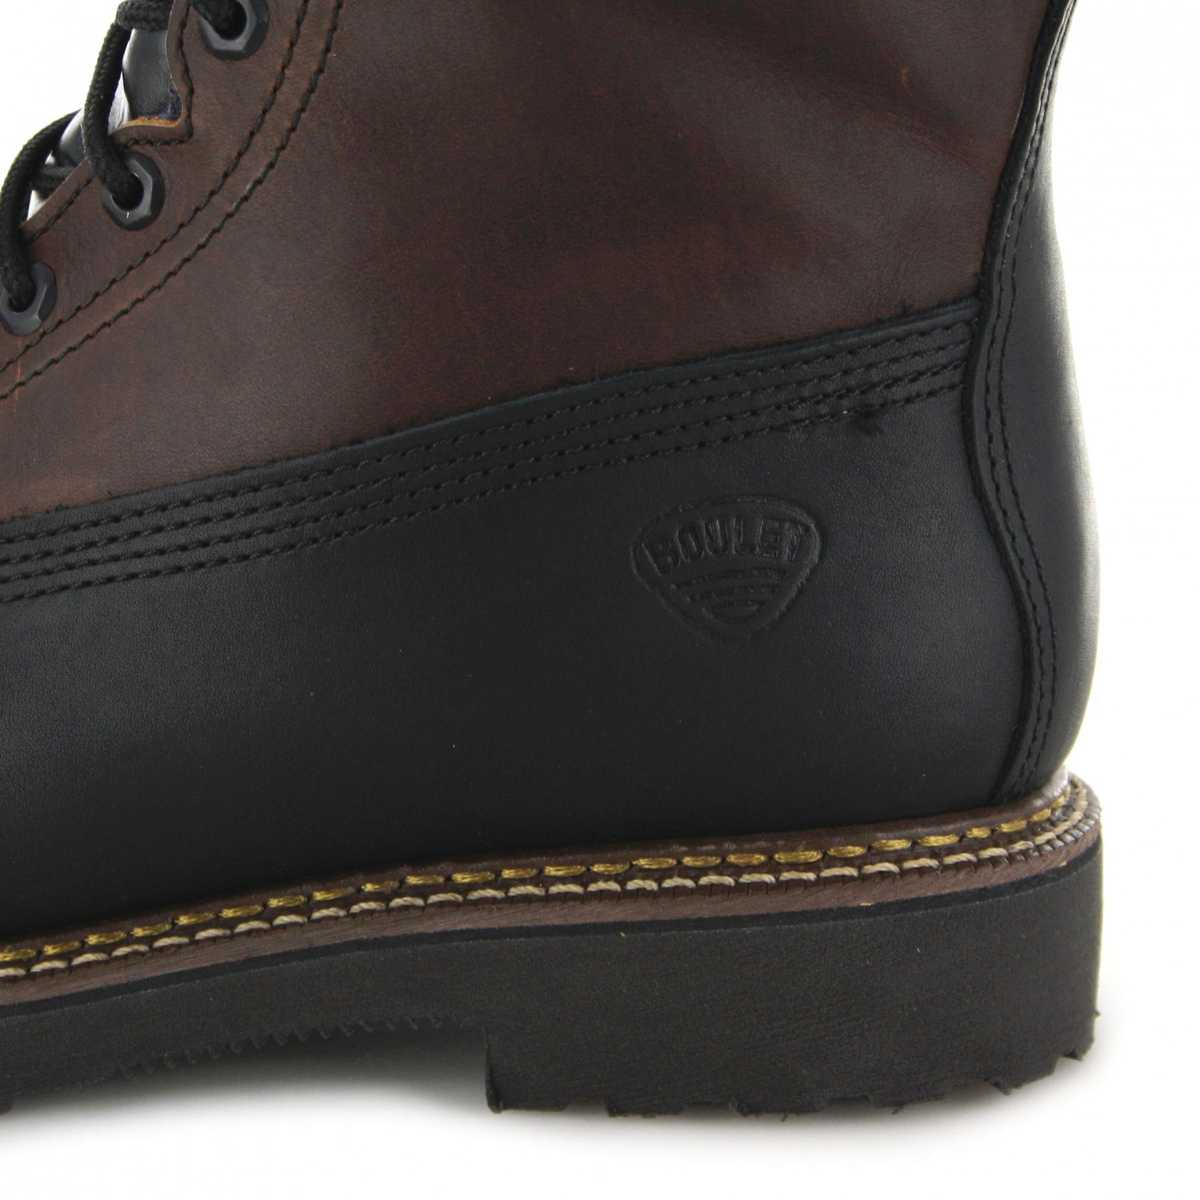 Boulet 5042 Winter Western riding boot with Thinsulate